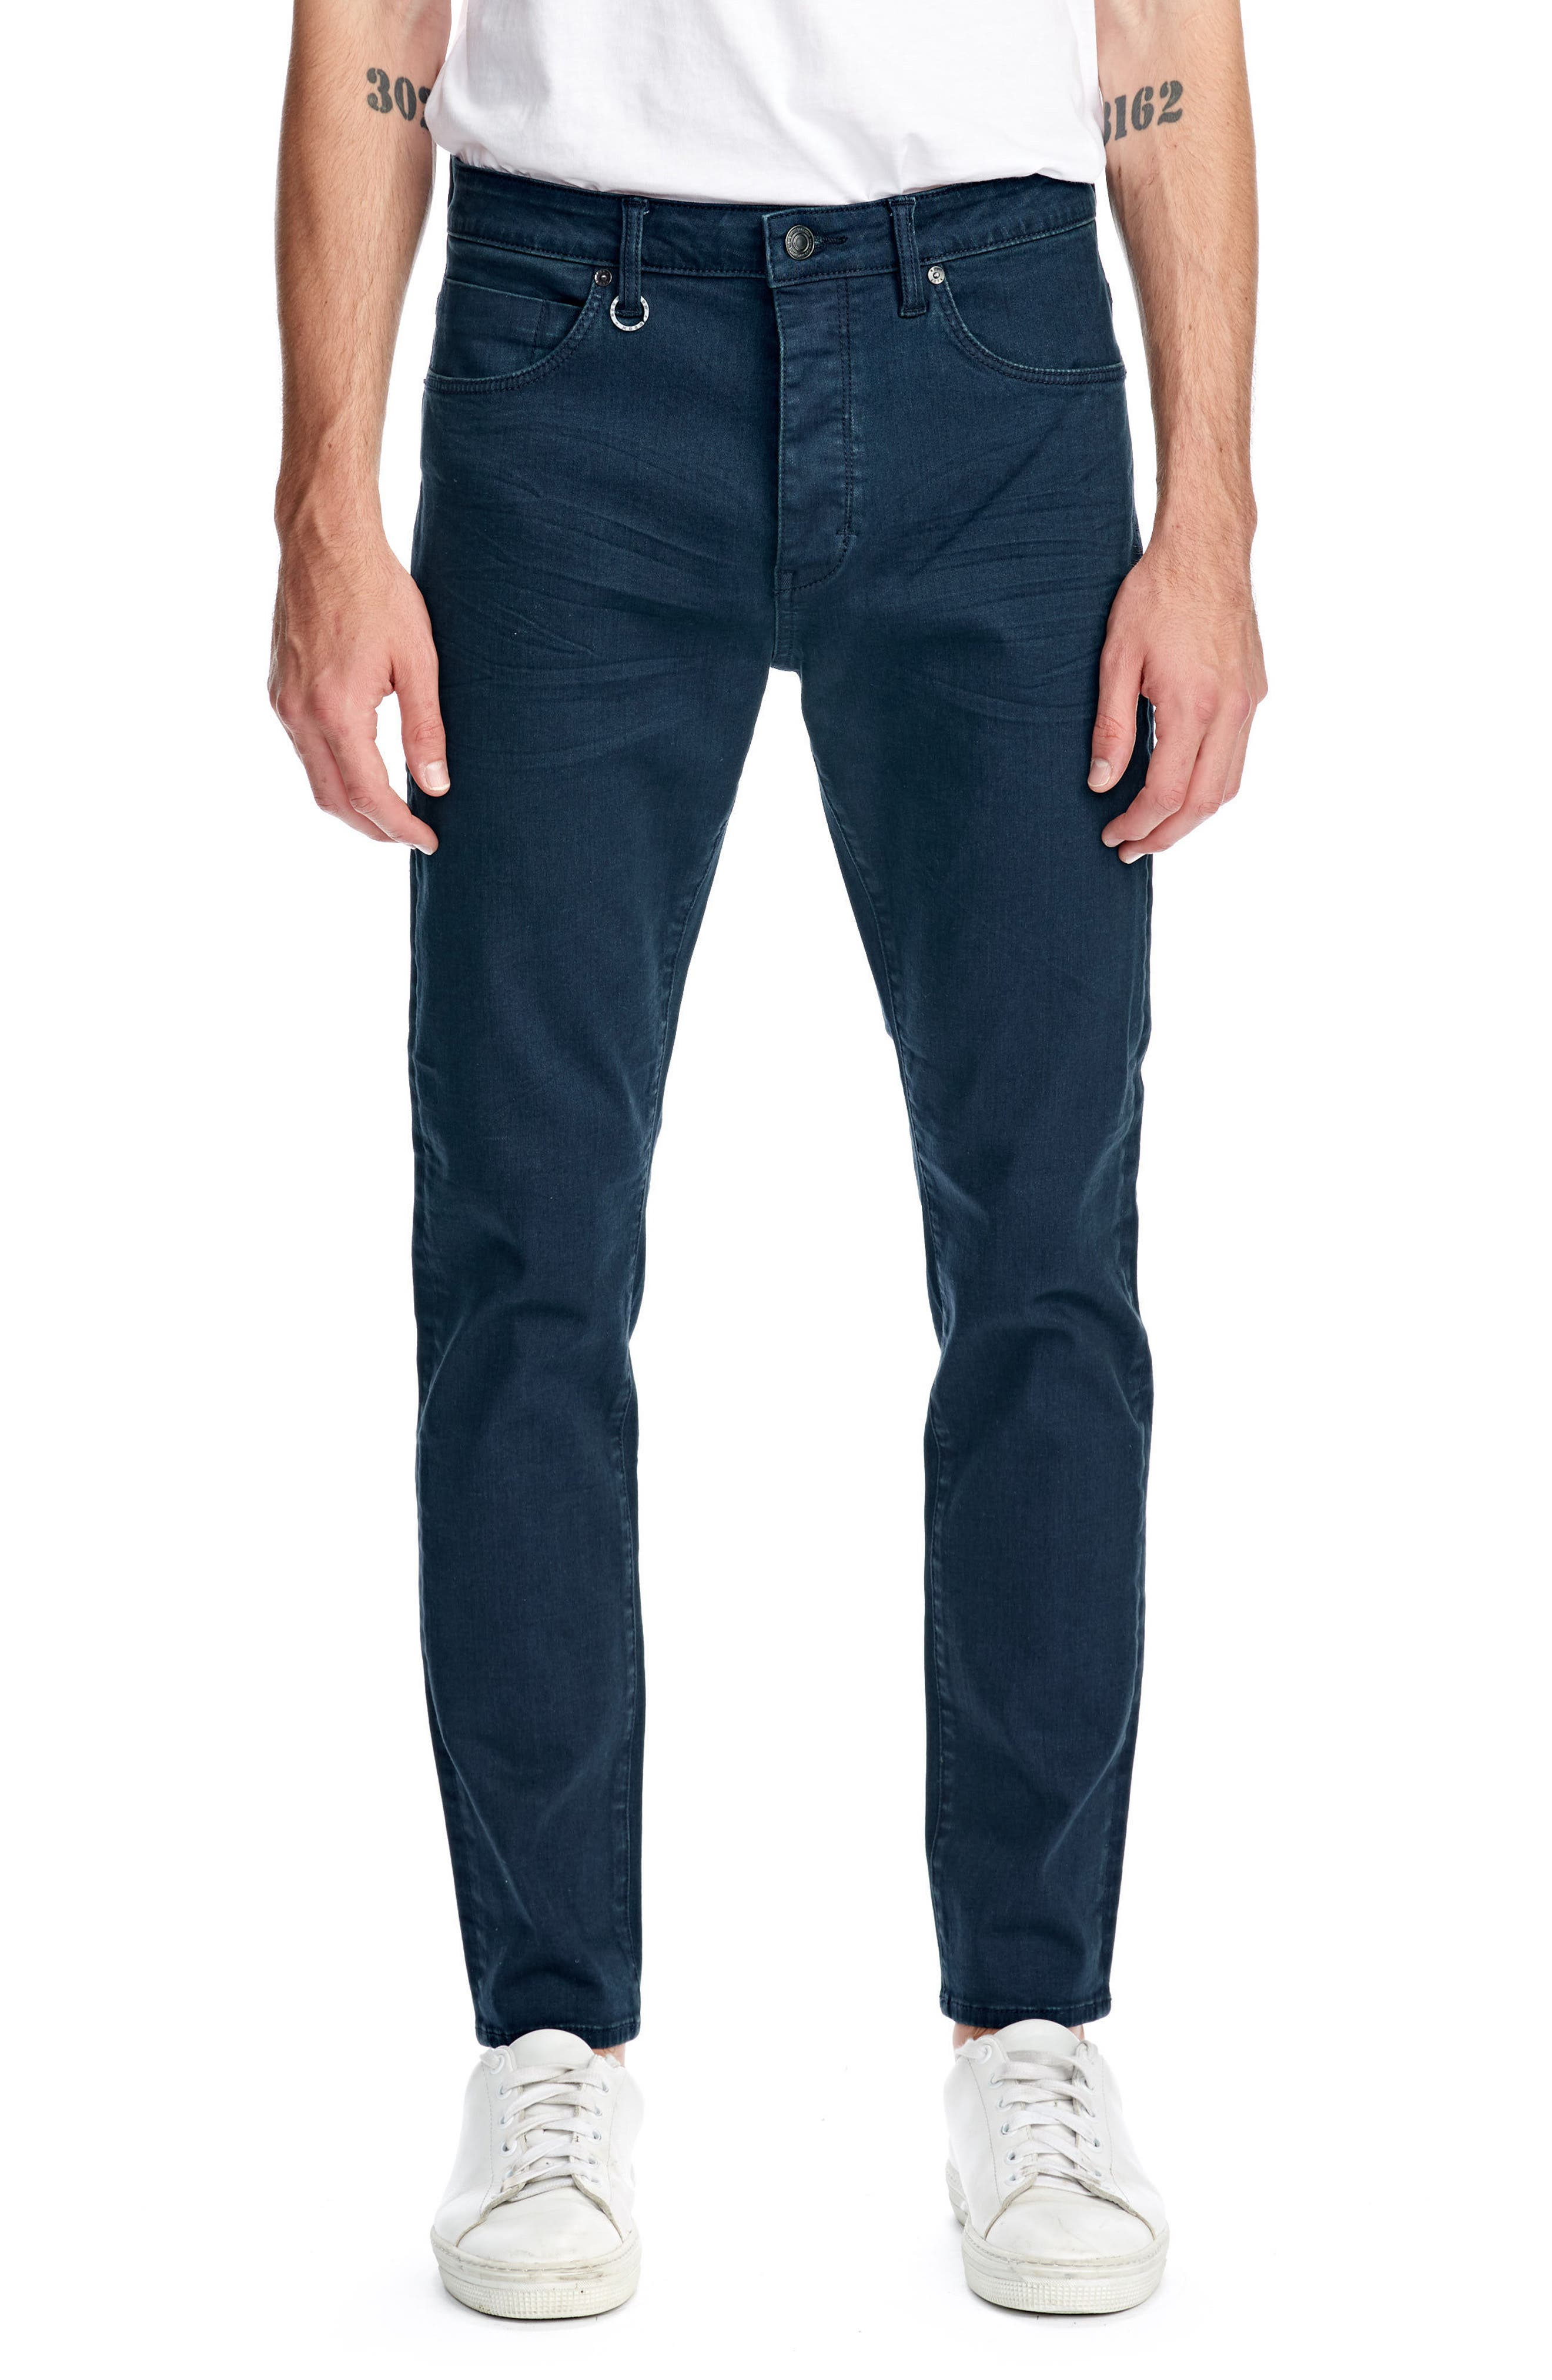 Ray Slim Fit Jeans,                         Main,                         color, NORDIC BLUE